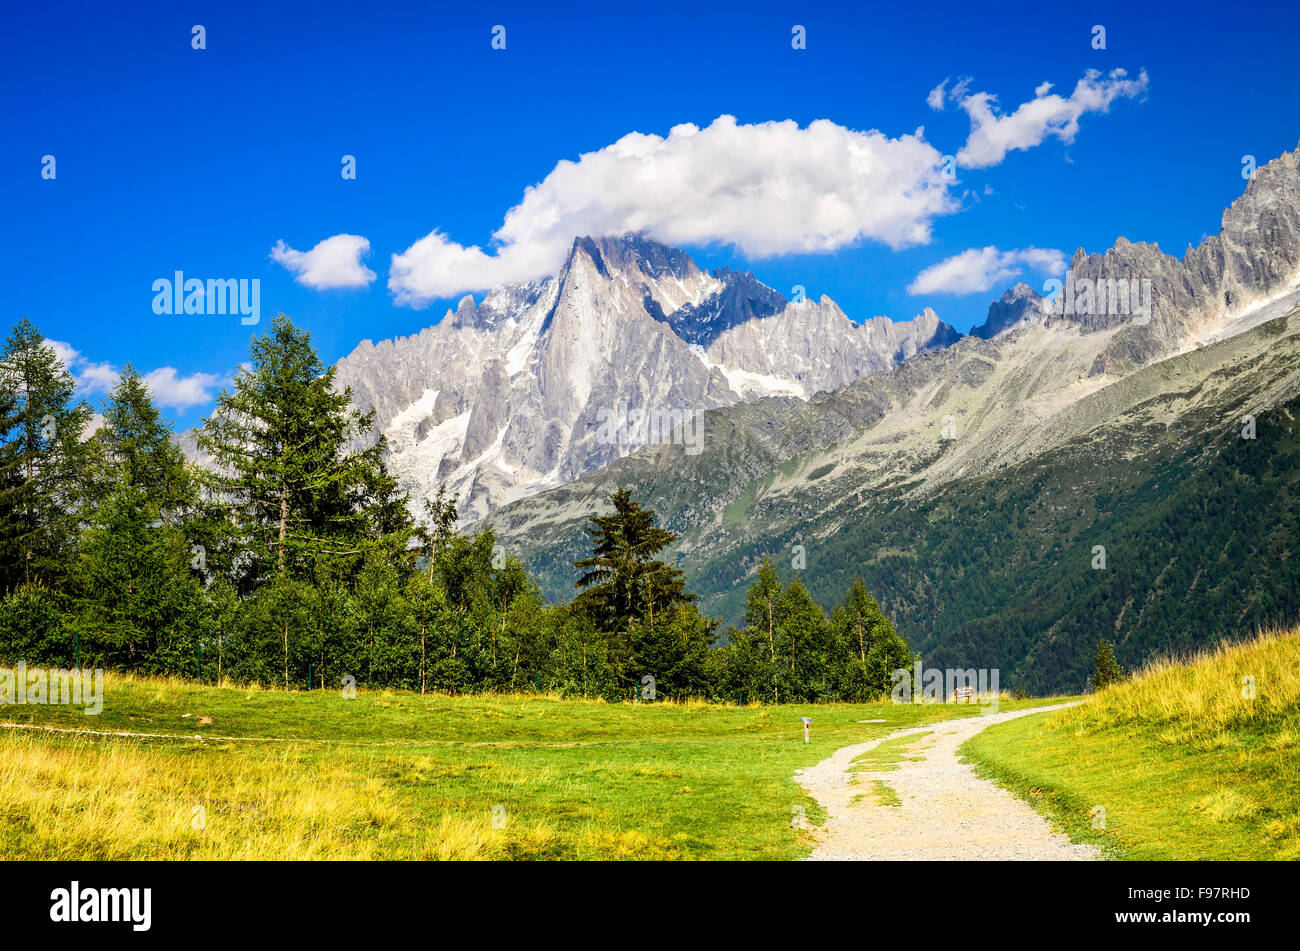 Mont Blanc, France. Summer scennery with amazing Aiguille du Midi conic mountain in Chamonix Haute-Savoie region - Stock Image